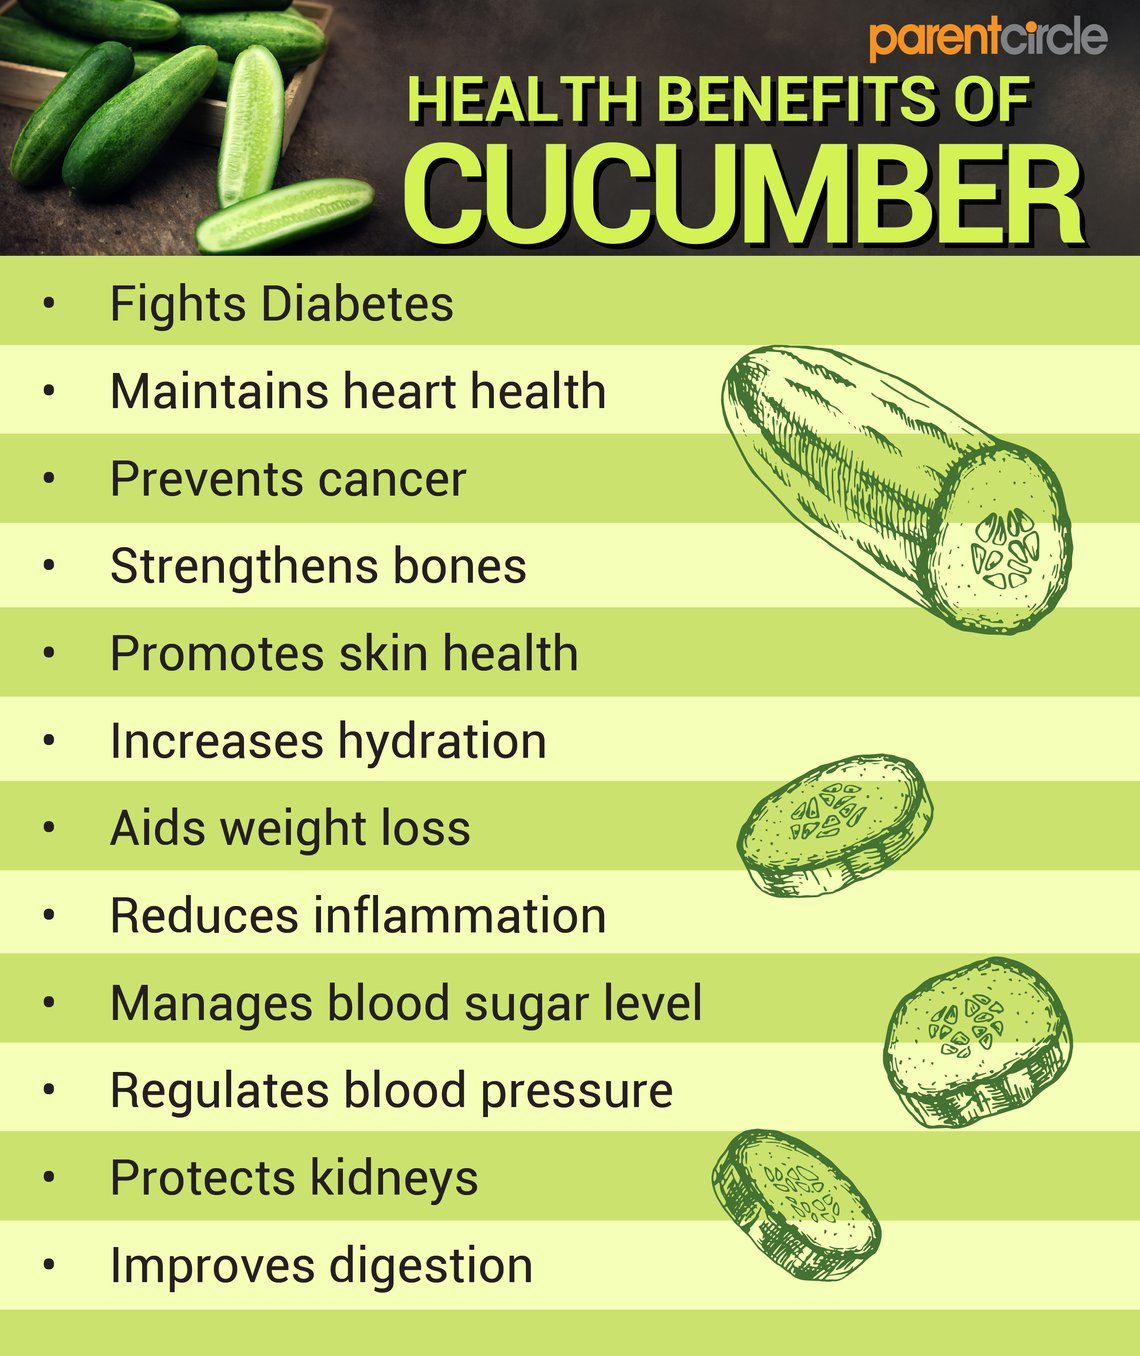 Cucumber Health Benefits, Calories And Nutrition Facts